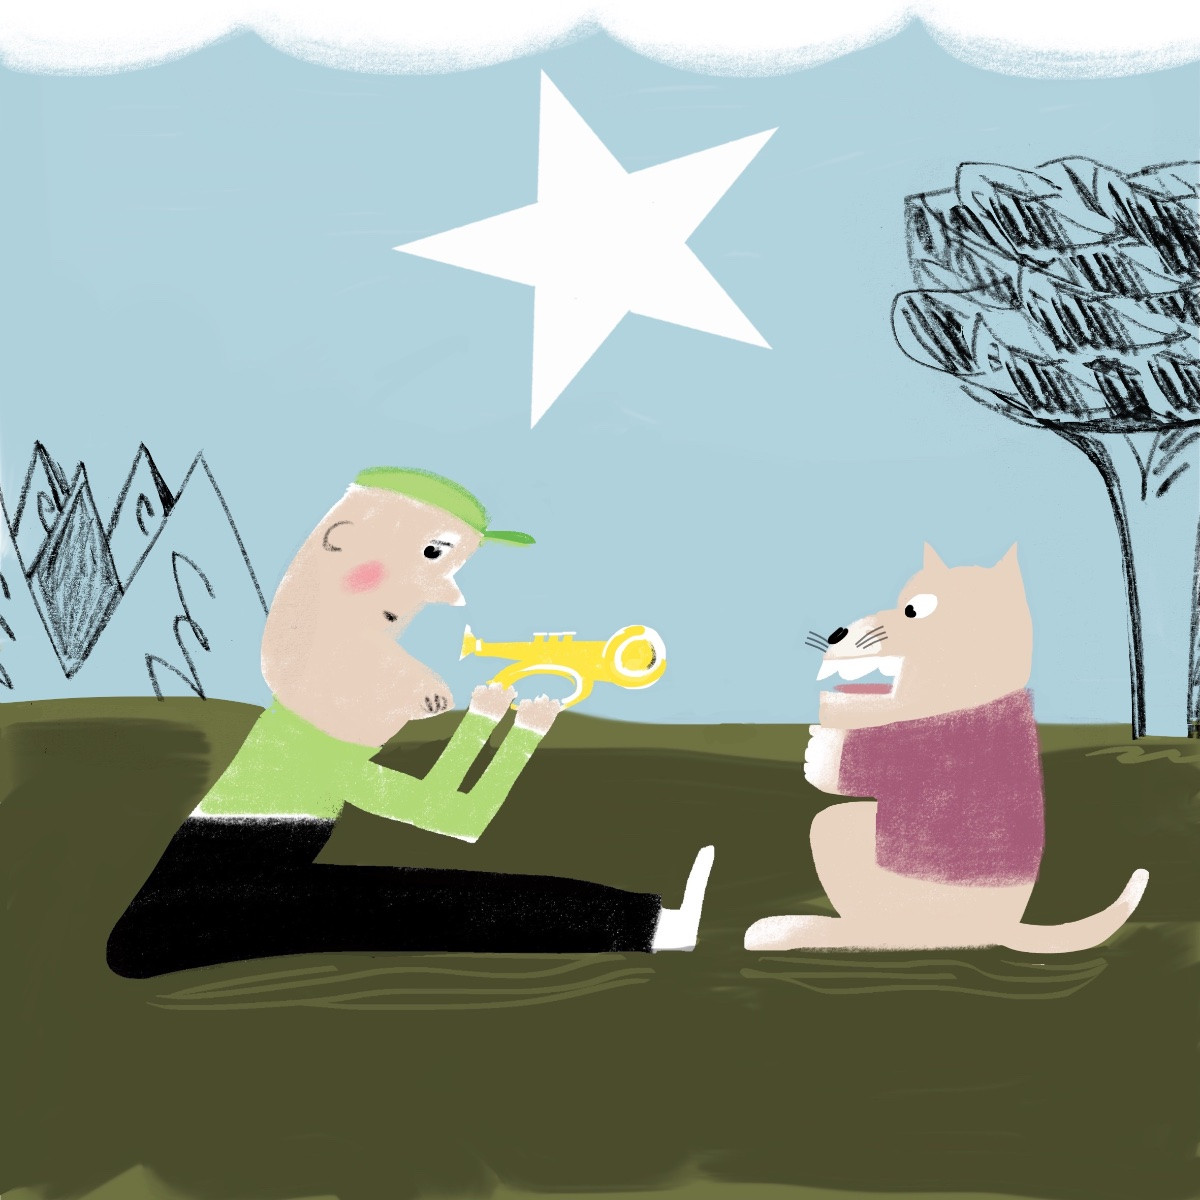 You can't teach an old dog new tricks. Blow that horn!